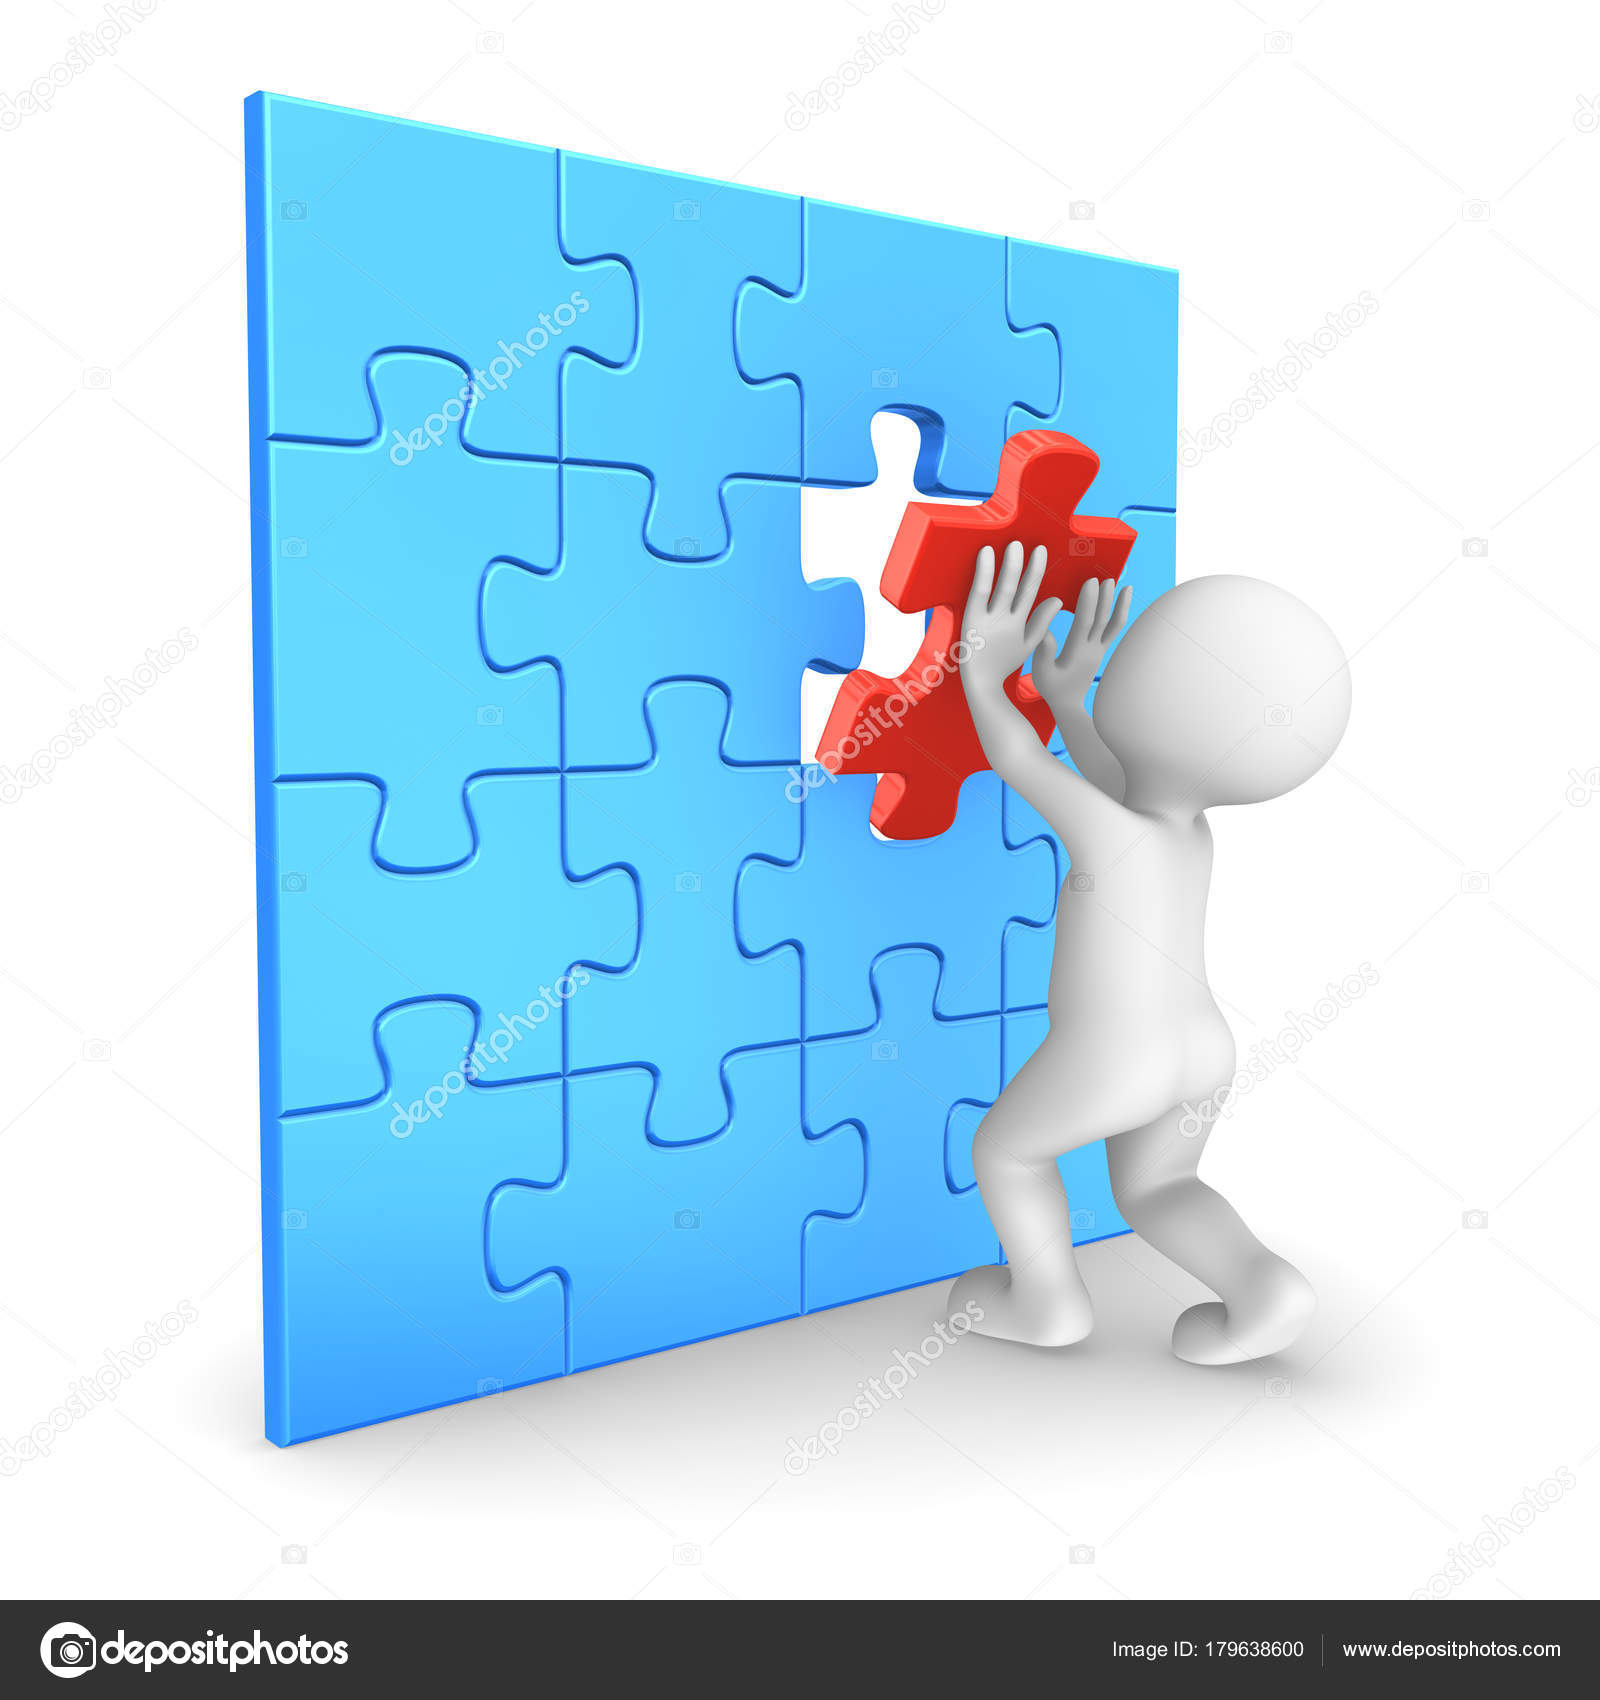 White Man Assembling Last Puzzle Piece Rendered Illustration — Stock Photo